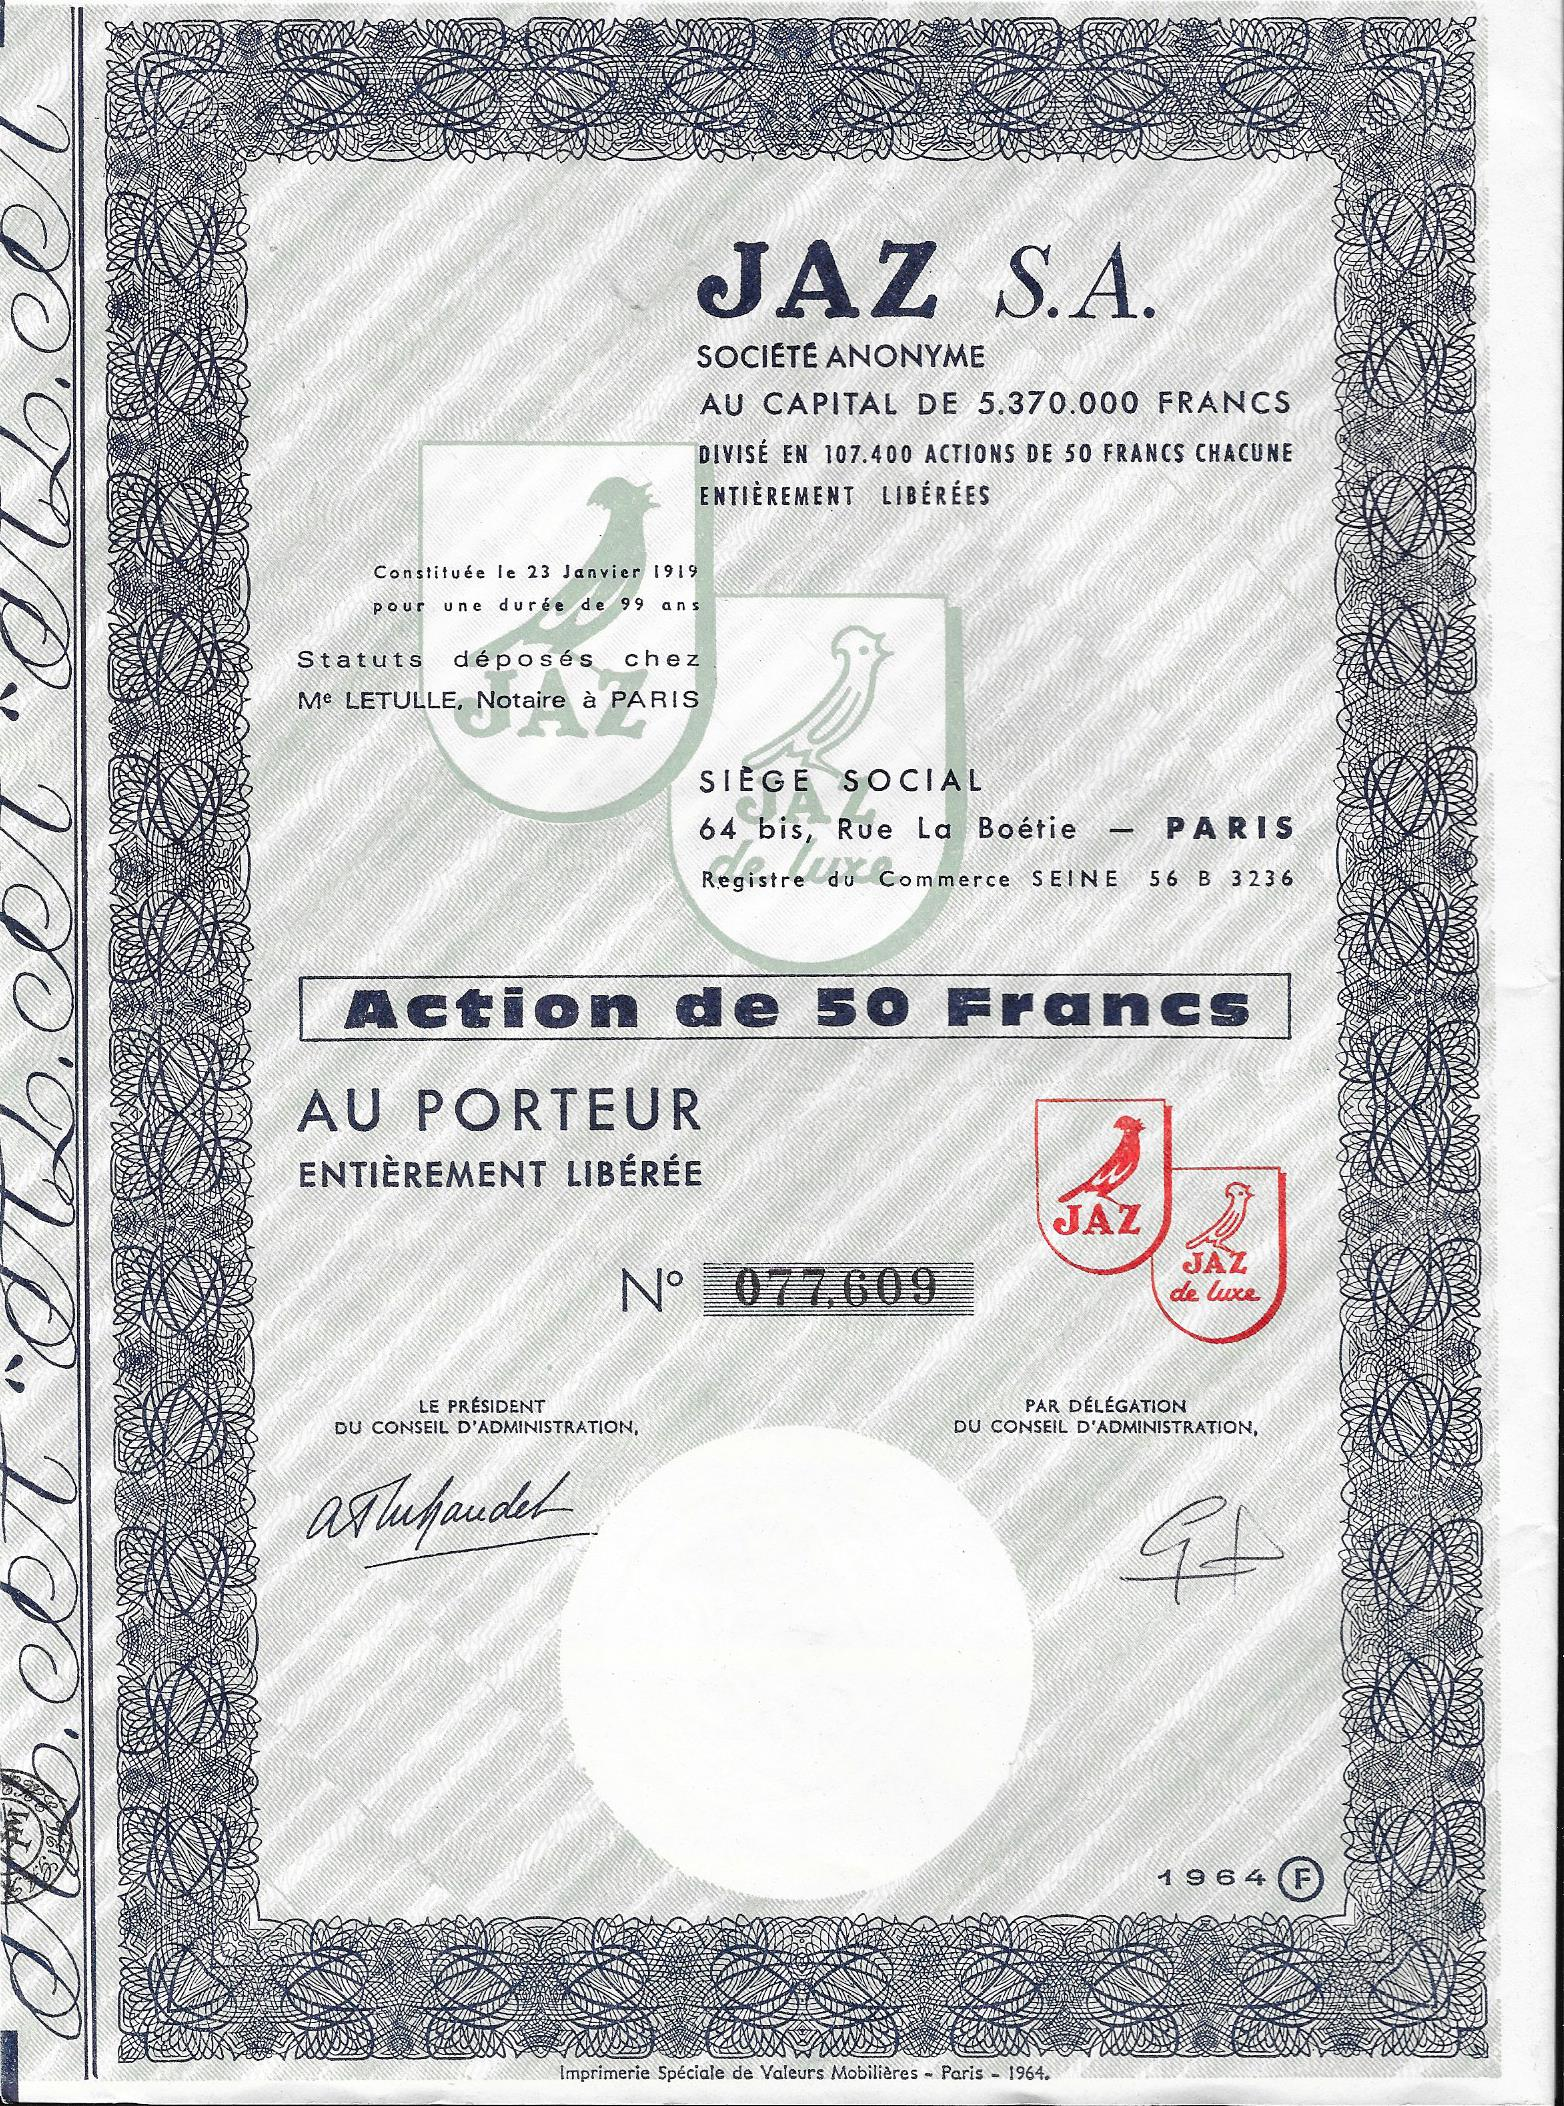 jaz-action-50-francs